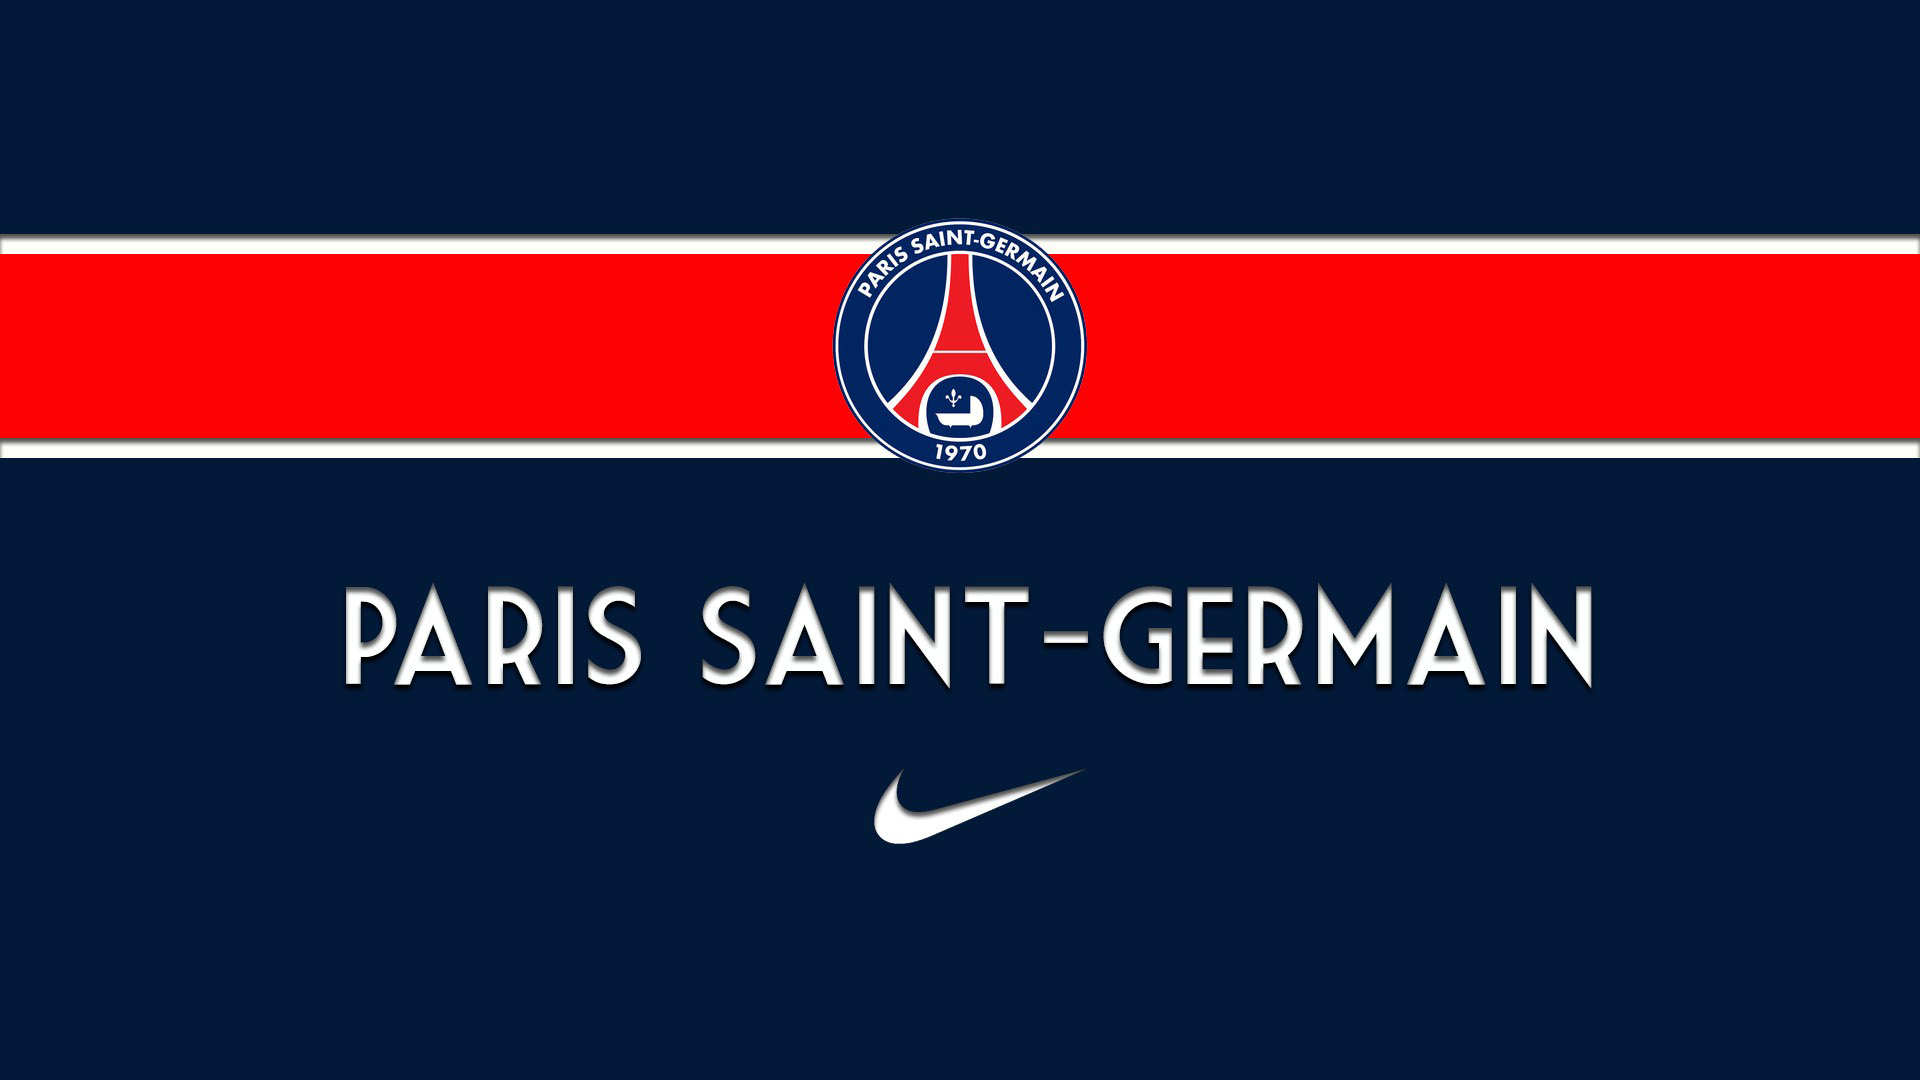 Free Download Psg Paris Saint Germain Wallpaper 1920x1080 For